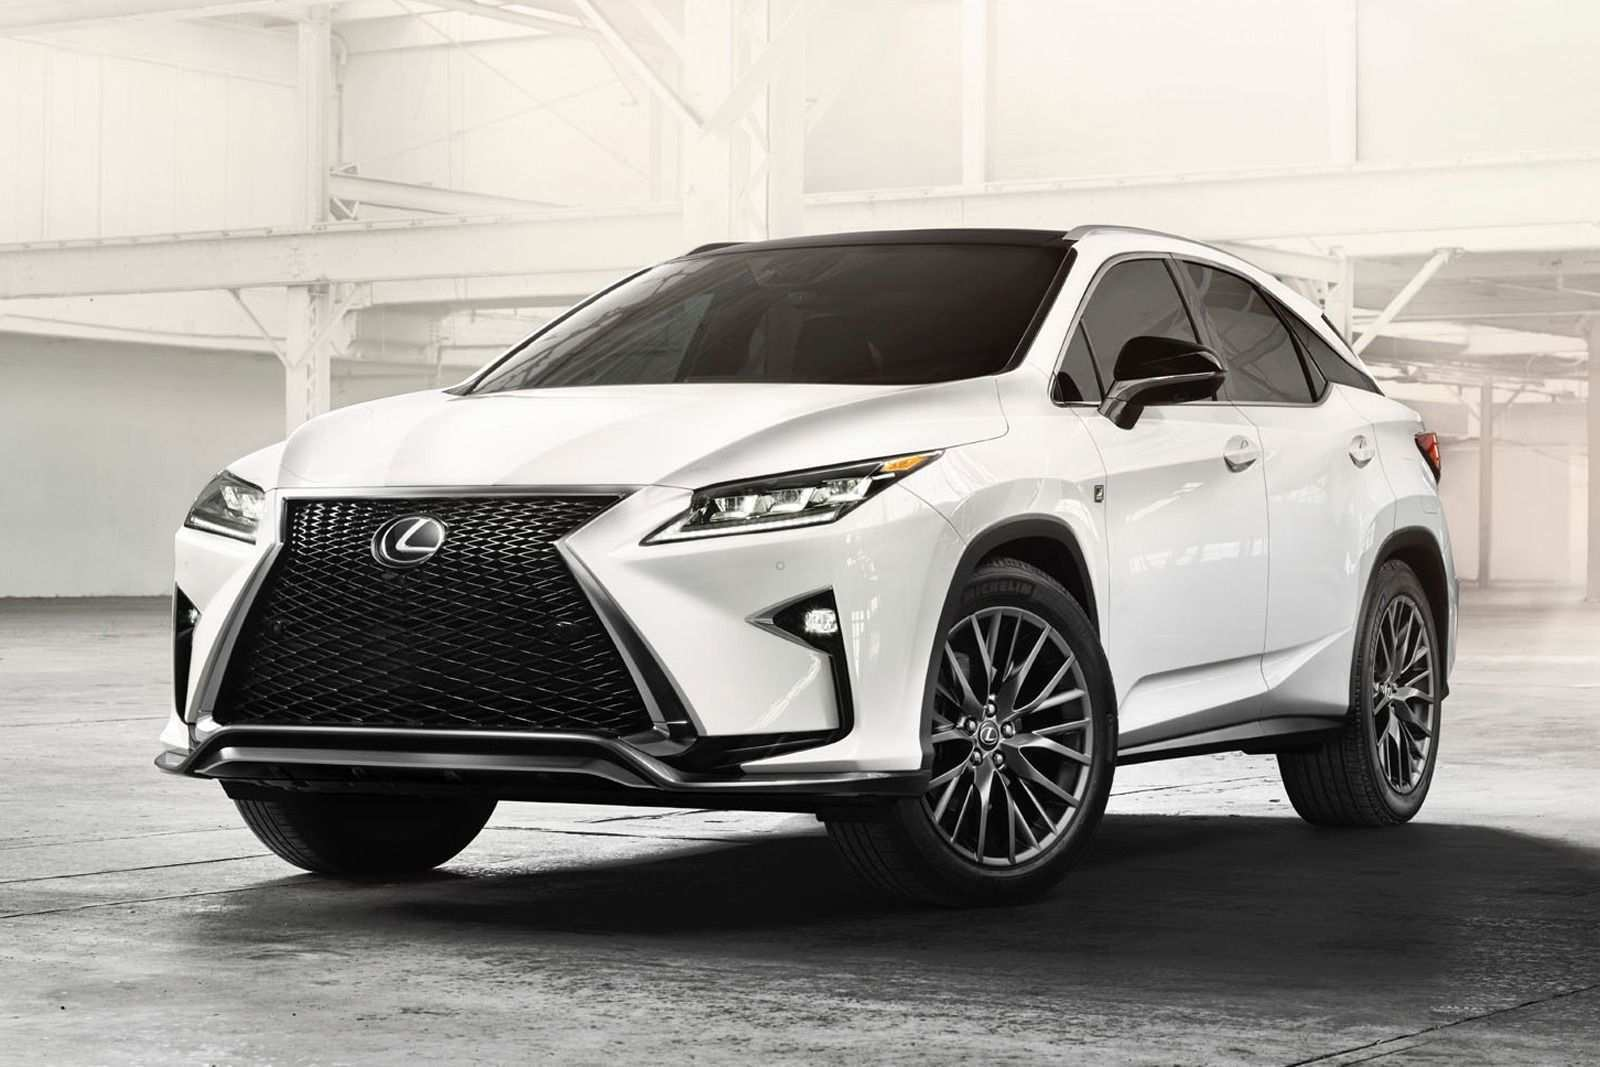 30 Gallery of 2020 Lexus Rx Review with 2020 Lexus Rx